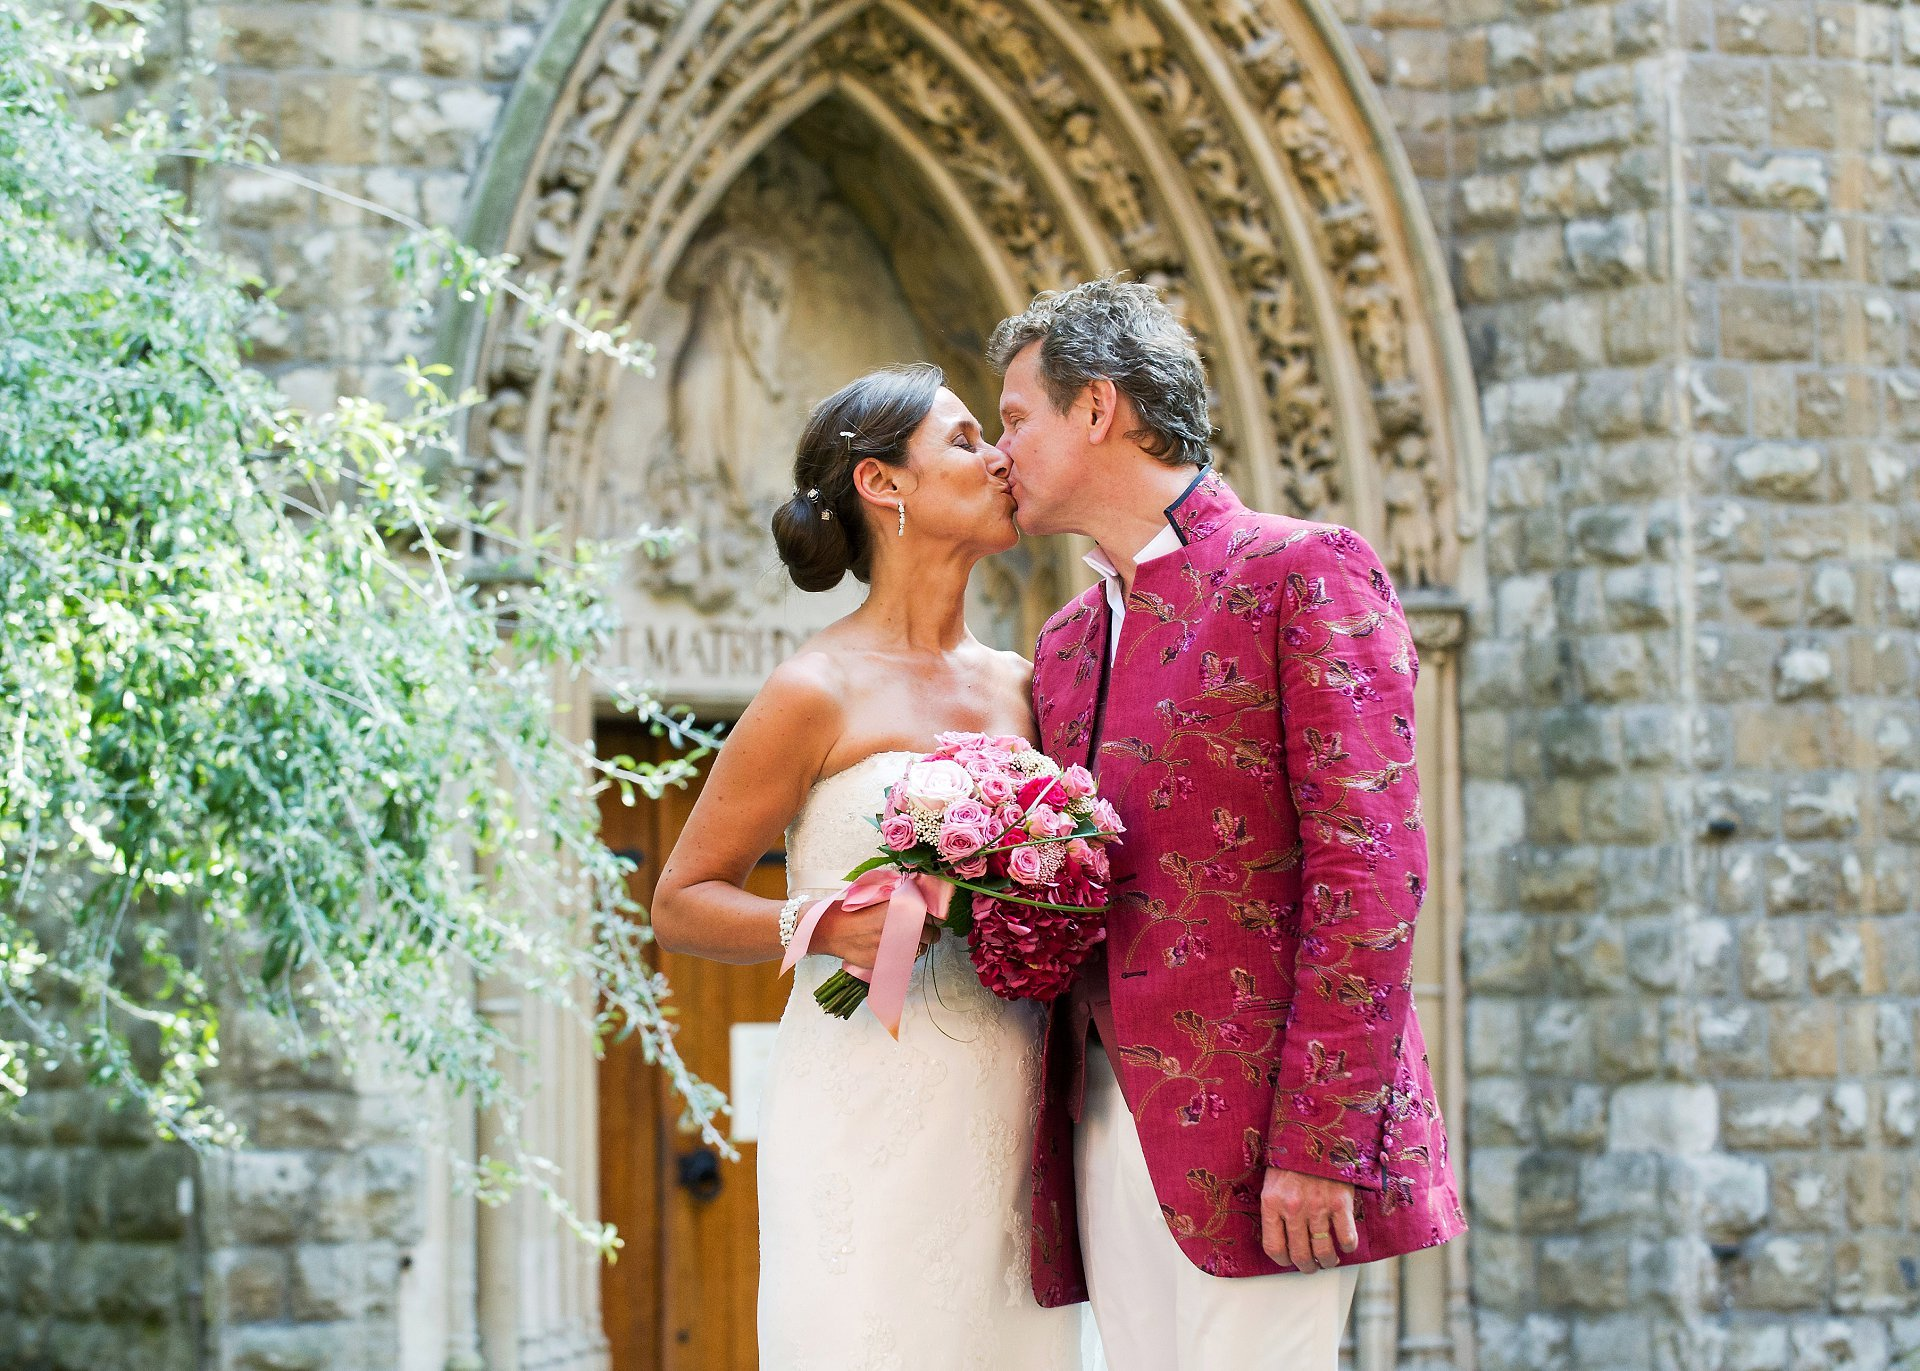 A couple in Mount Street Gardens celebrate their summer wedding at Mayfair Library